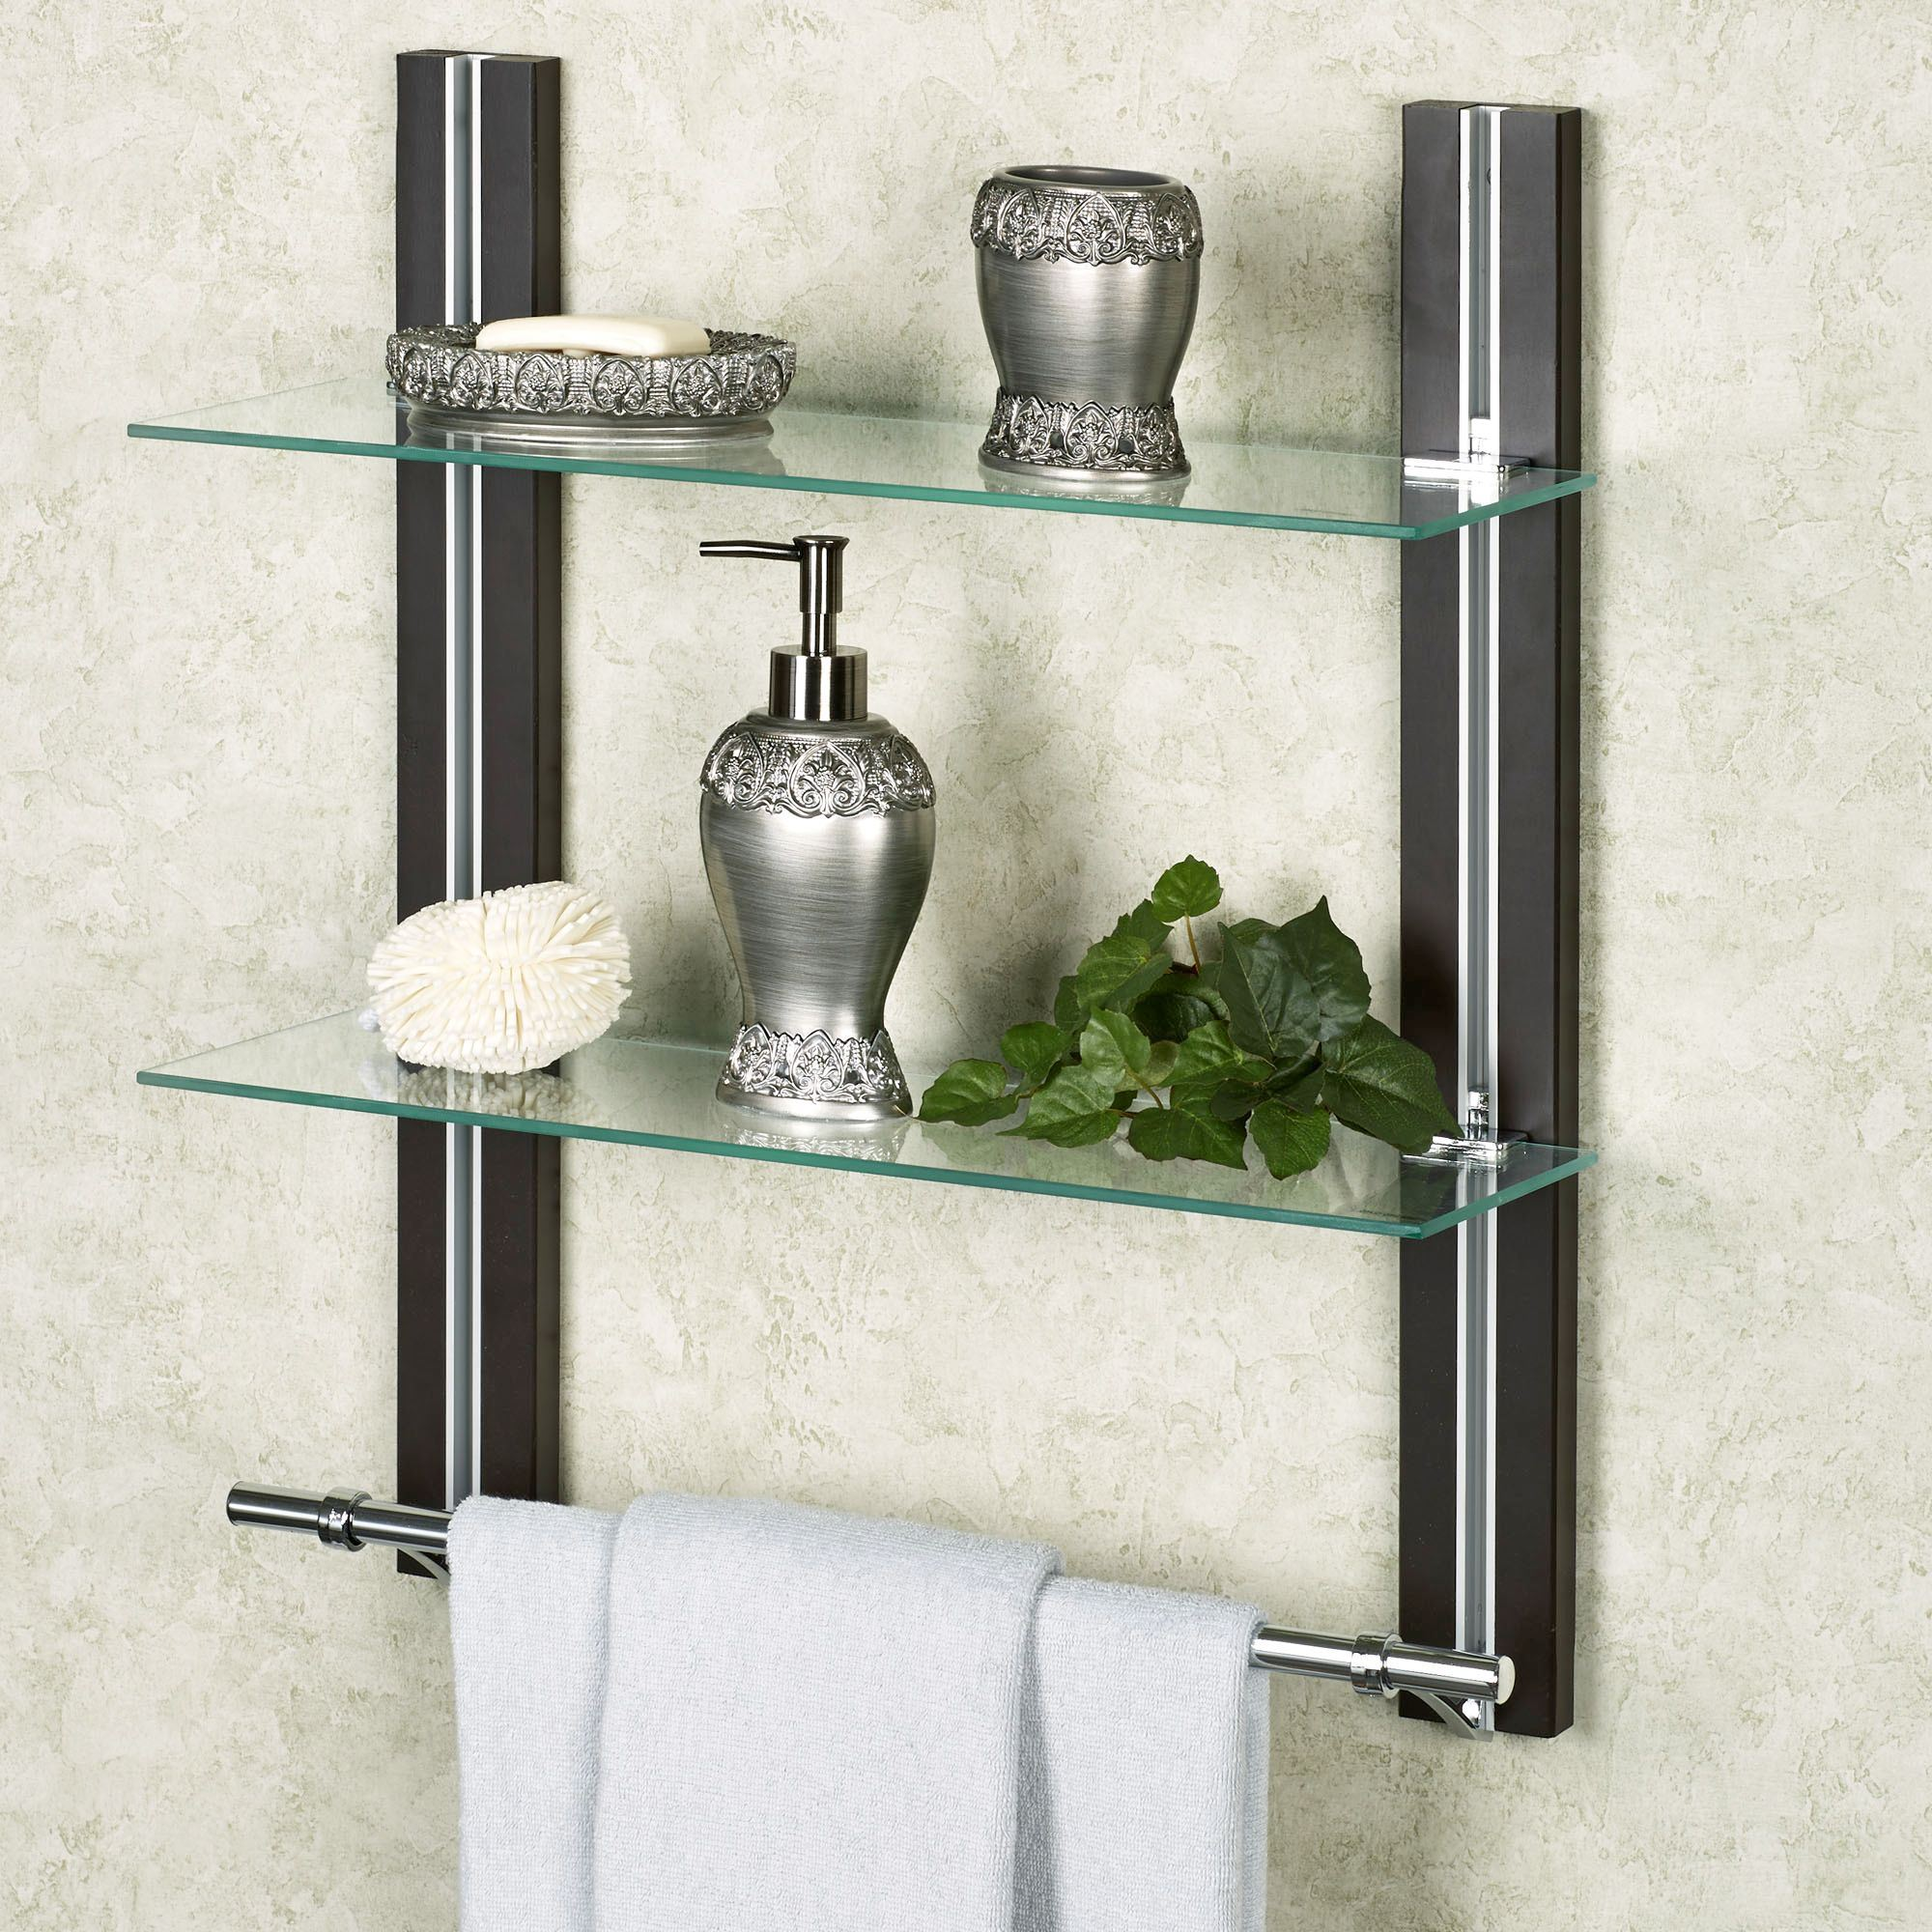 Exceptionnel ... Shelf With Towel Bar Espresso. Touch To Zoom